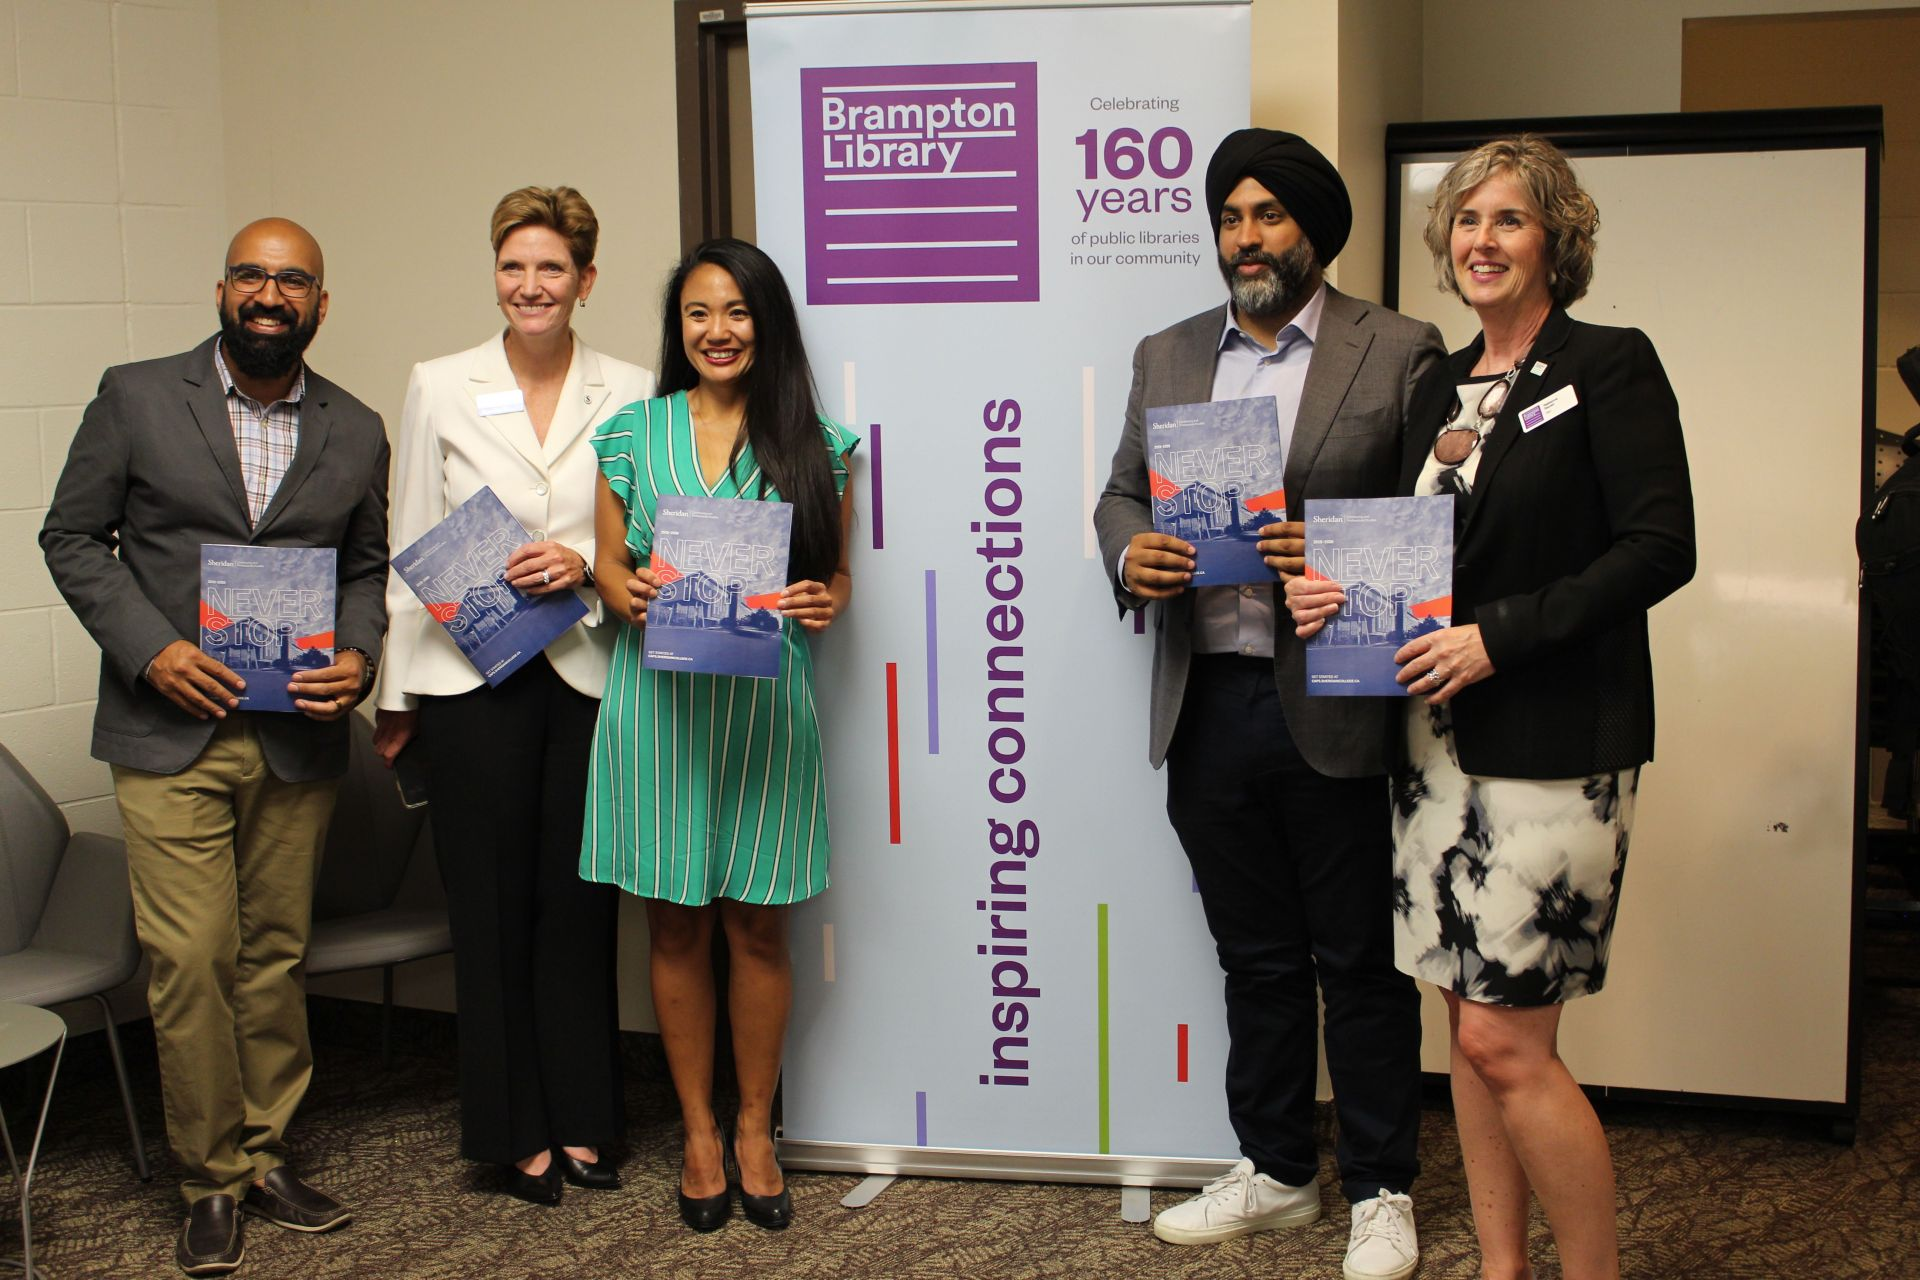 Sheridan, Brampton Council and Brampton Library delegates at a launch event